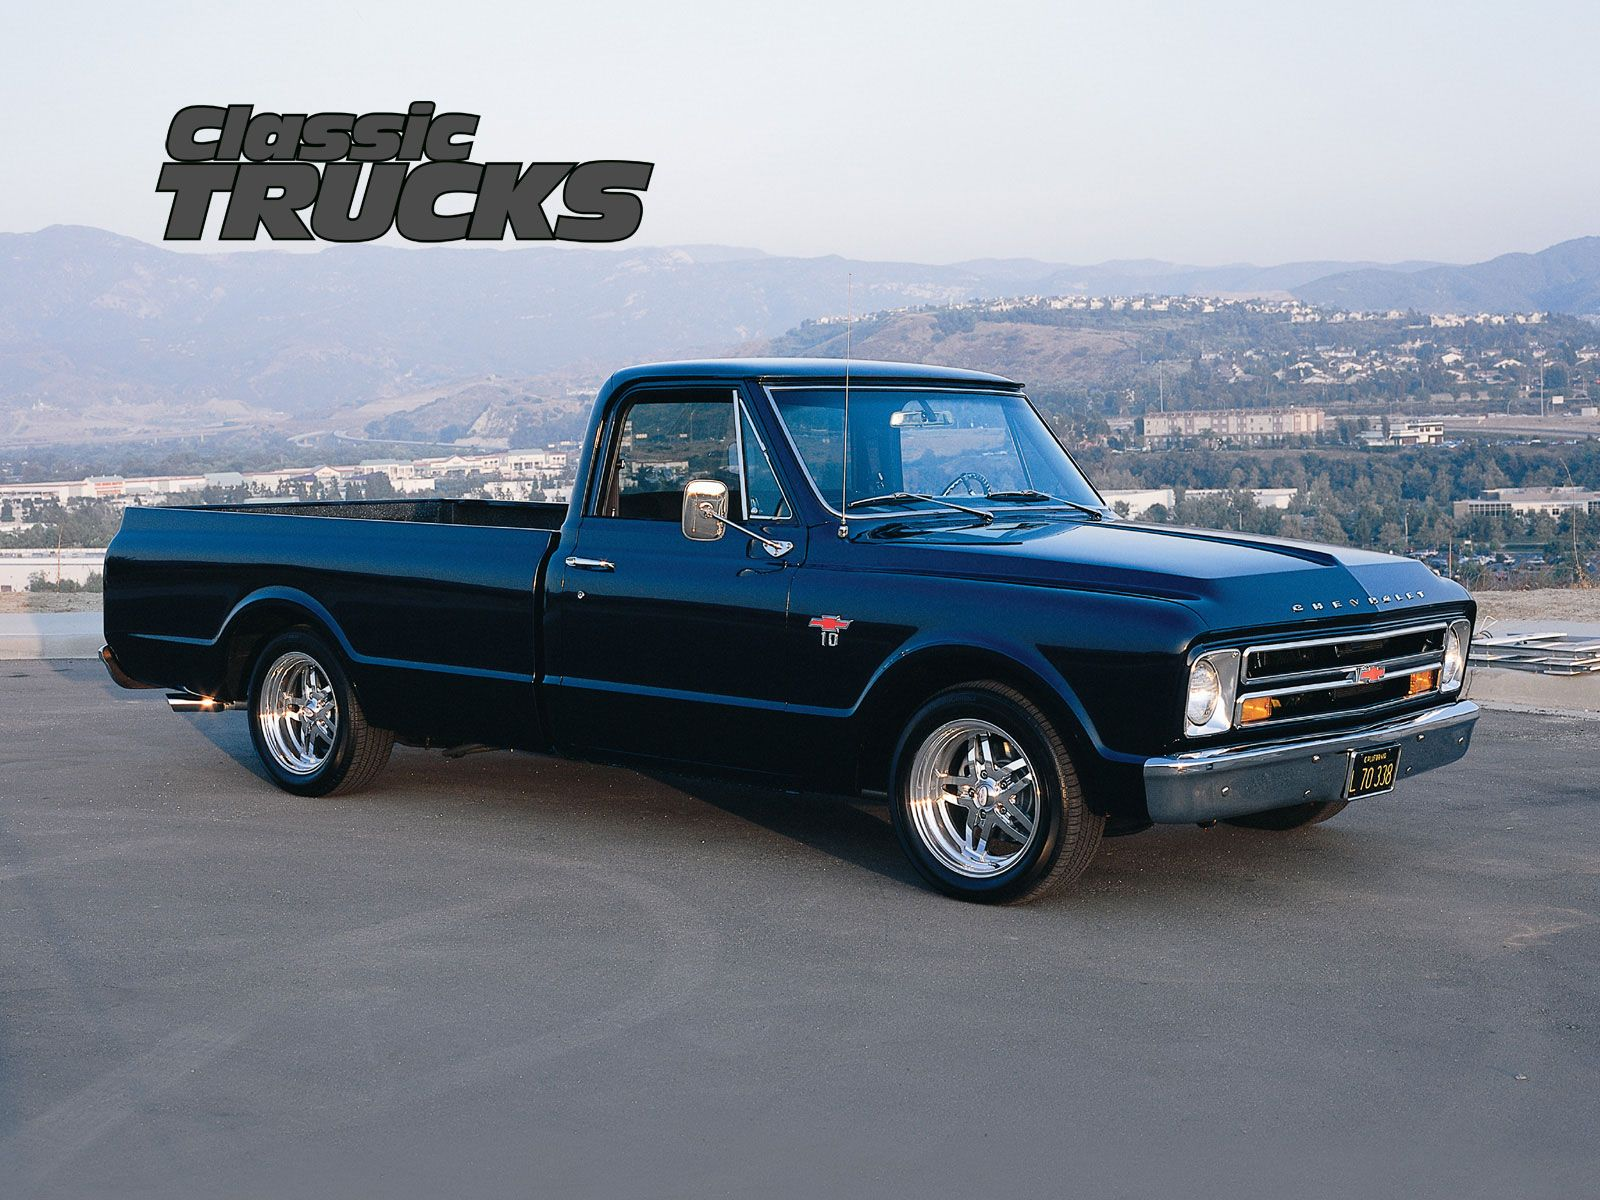 Old Chevy Truck Wallpapers 1600x1200